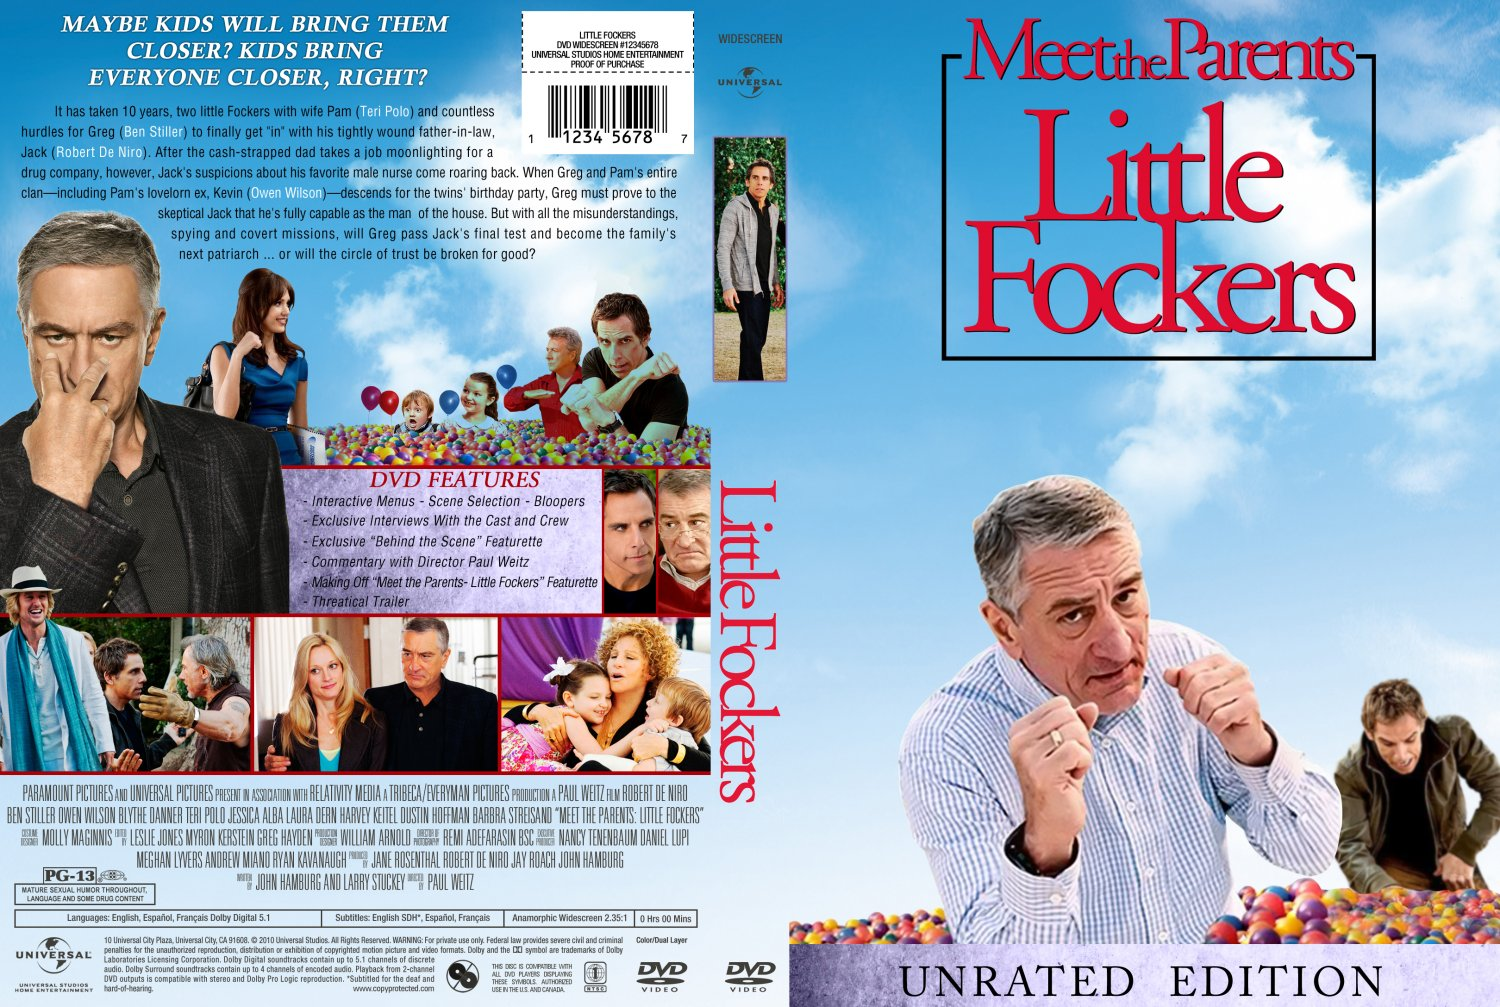 meet the parents little fockers dvd cover